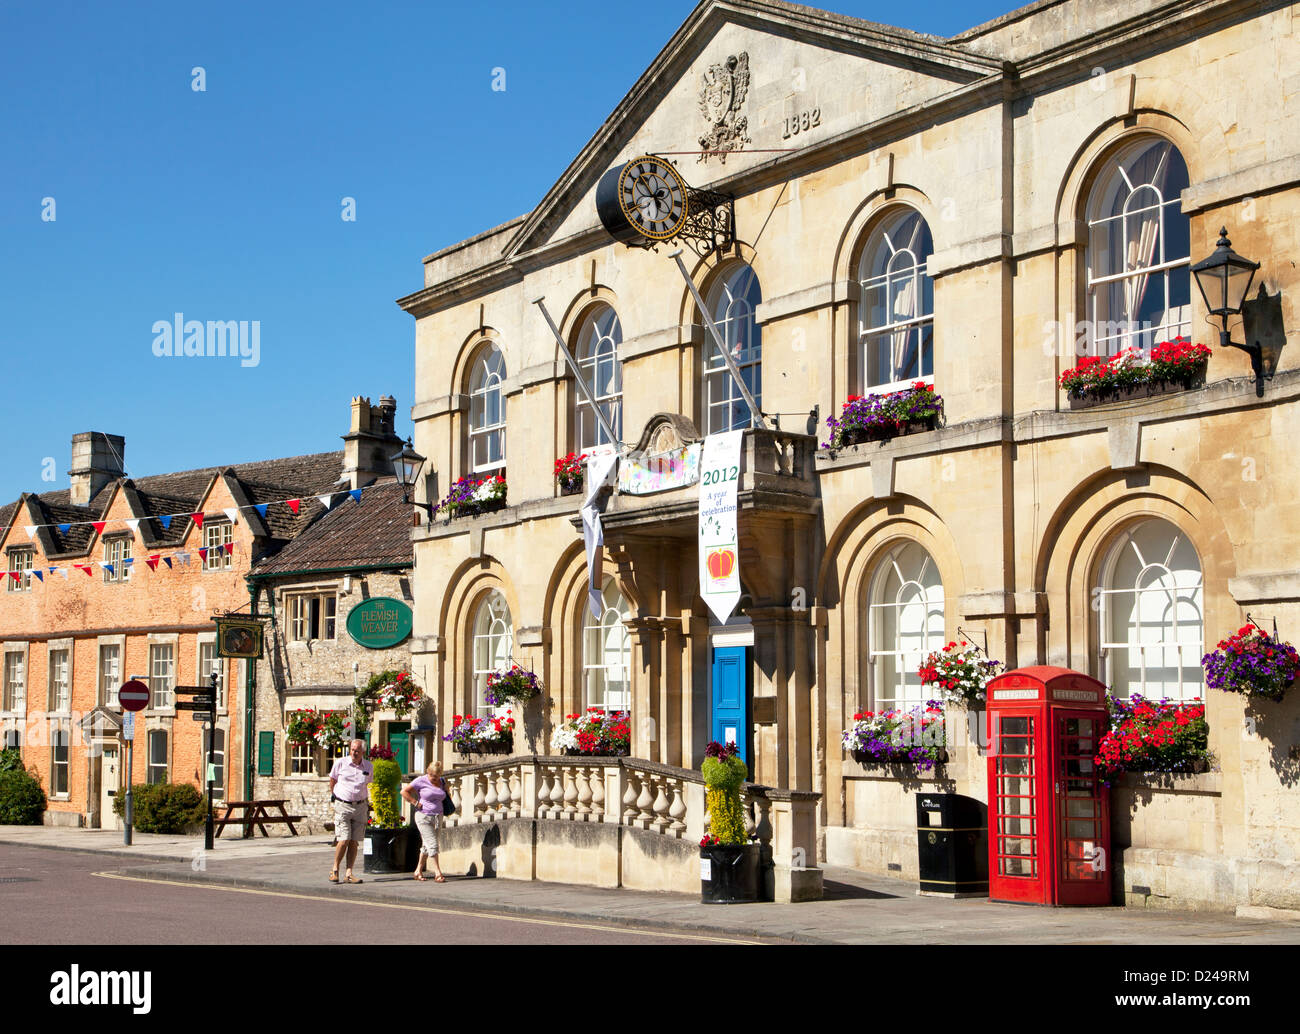 The town hall in Corsham in Wiltshire, England. Stock Photo